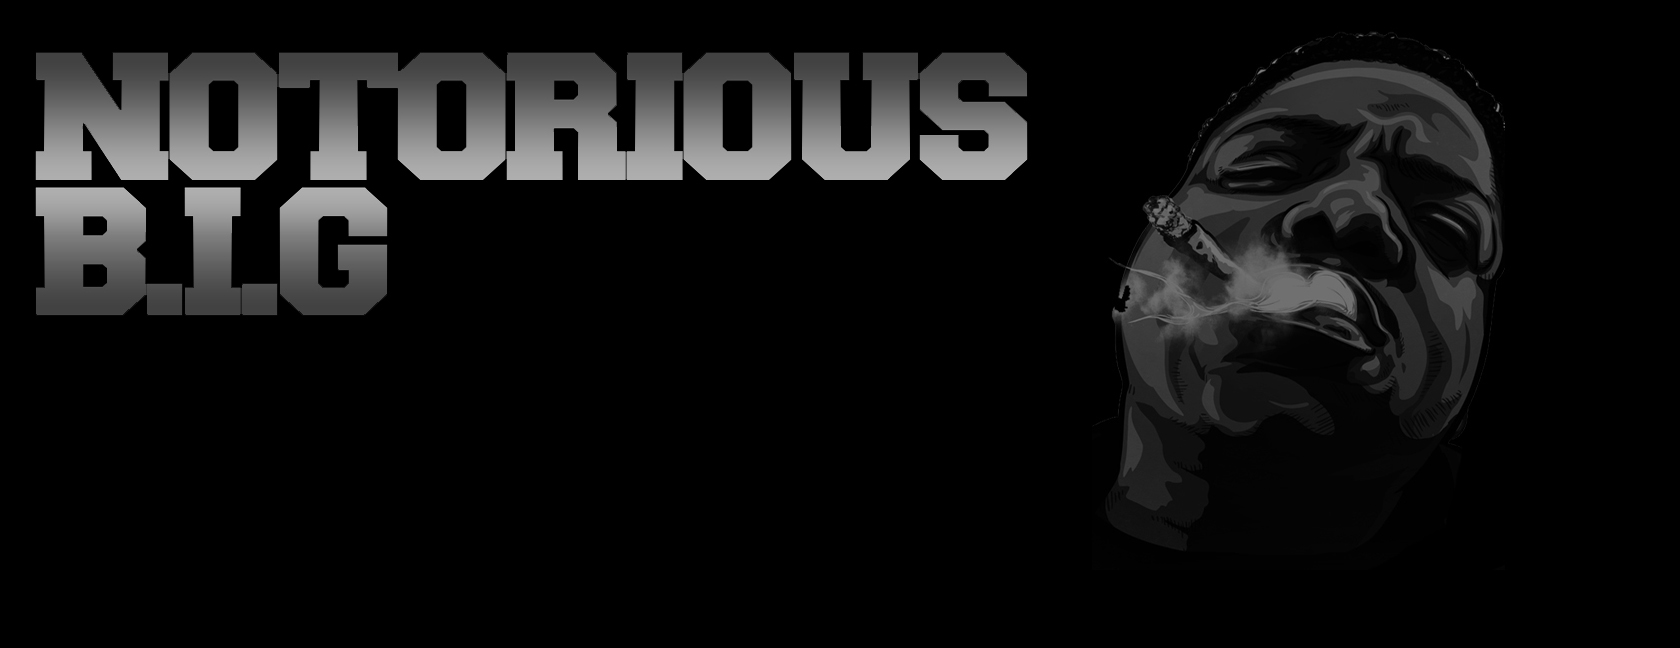 The notorious b i g facebook cover by darkzabimaru